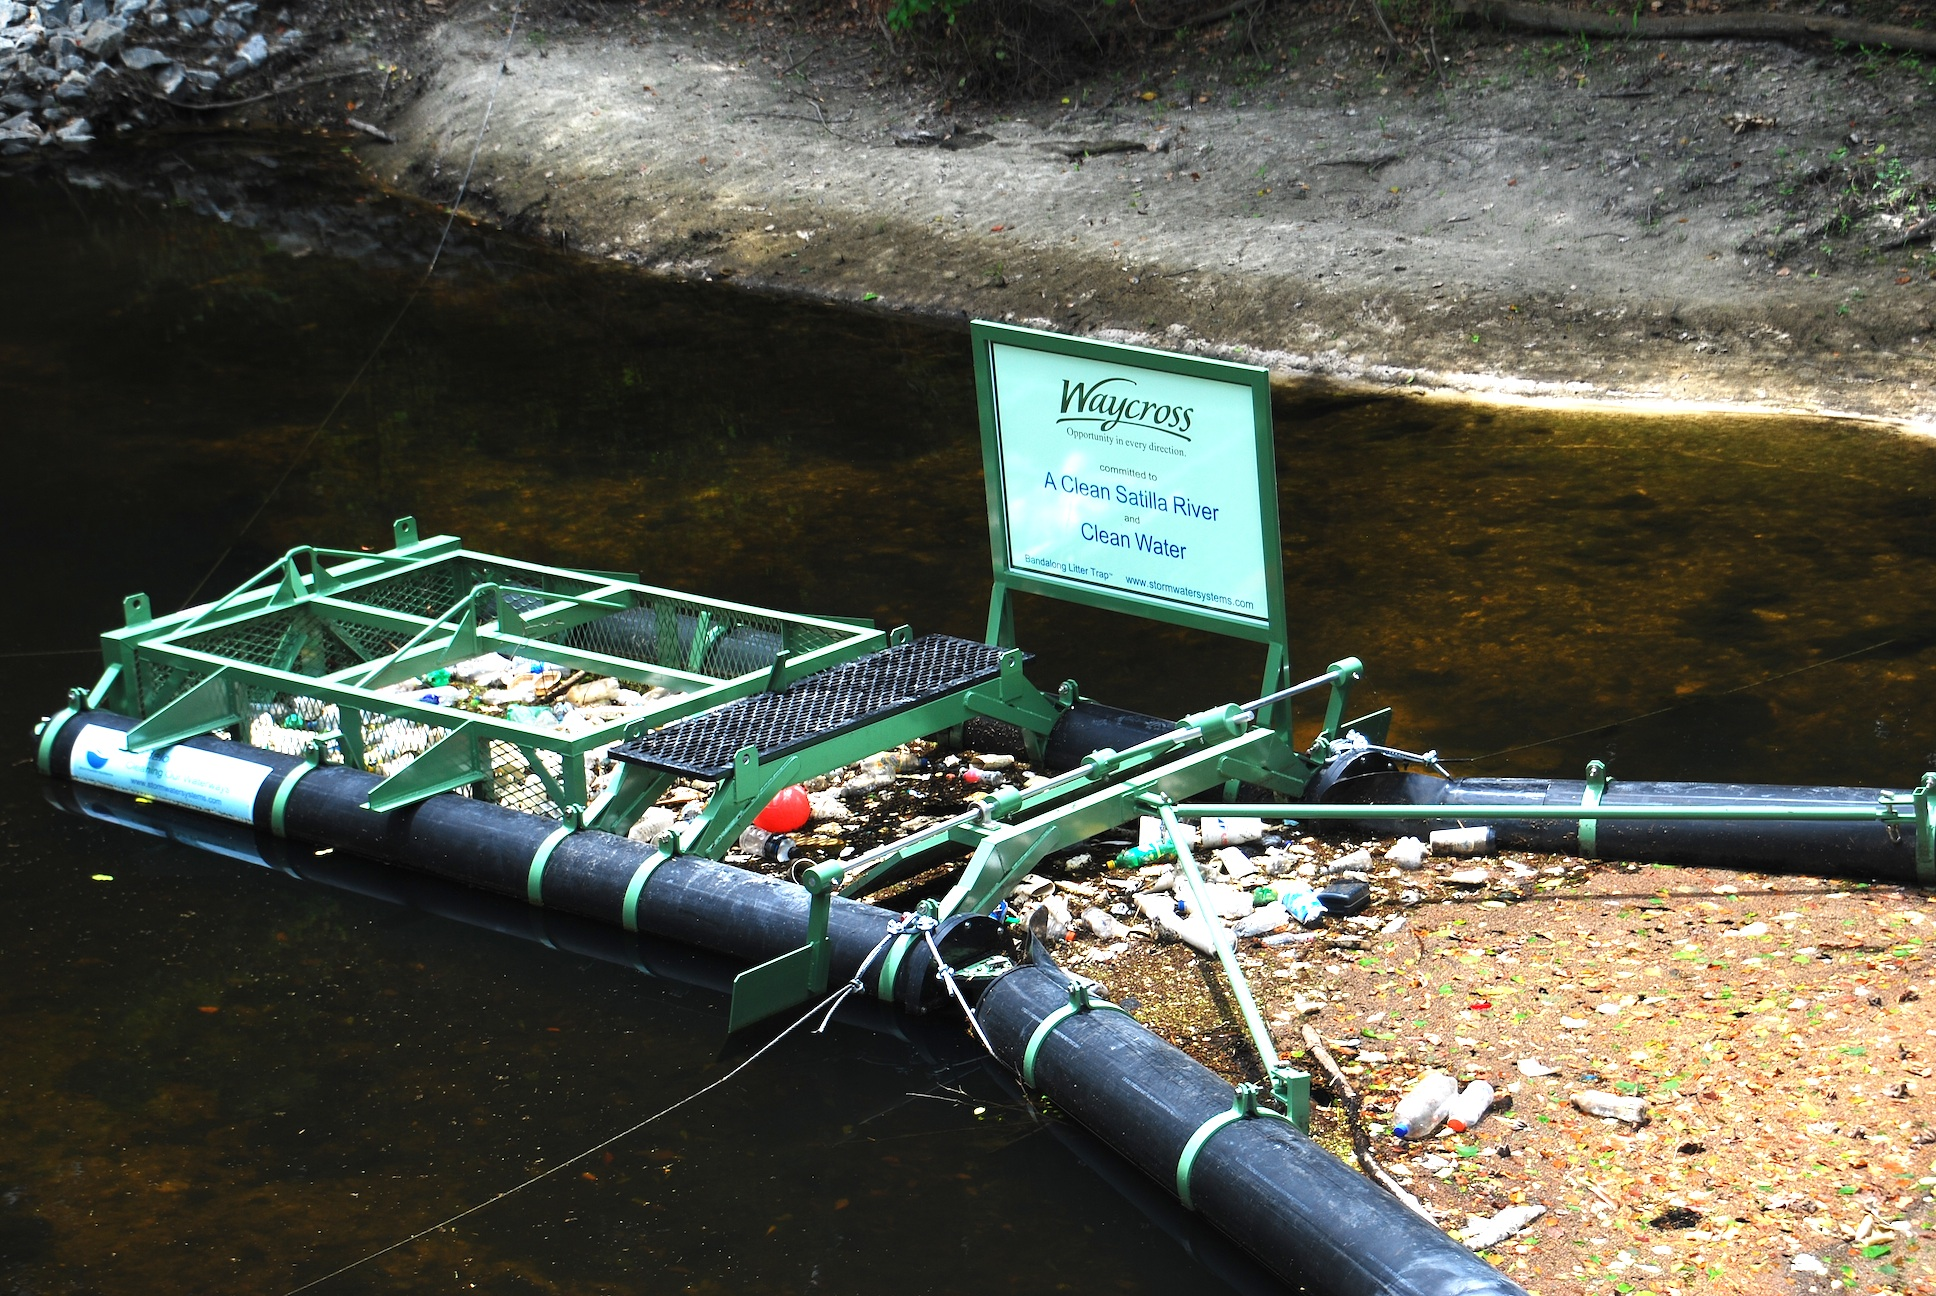 Waycross, Georgia Shares Their Experience with the Bandalong Litter Trap